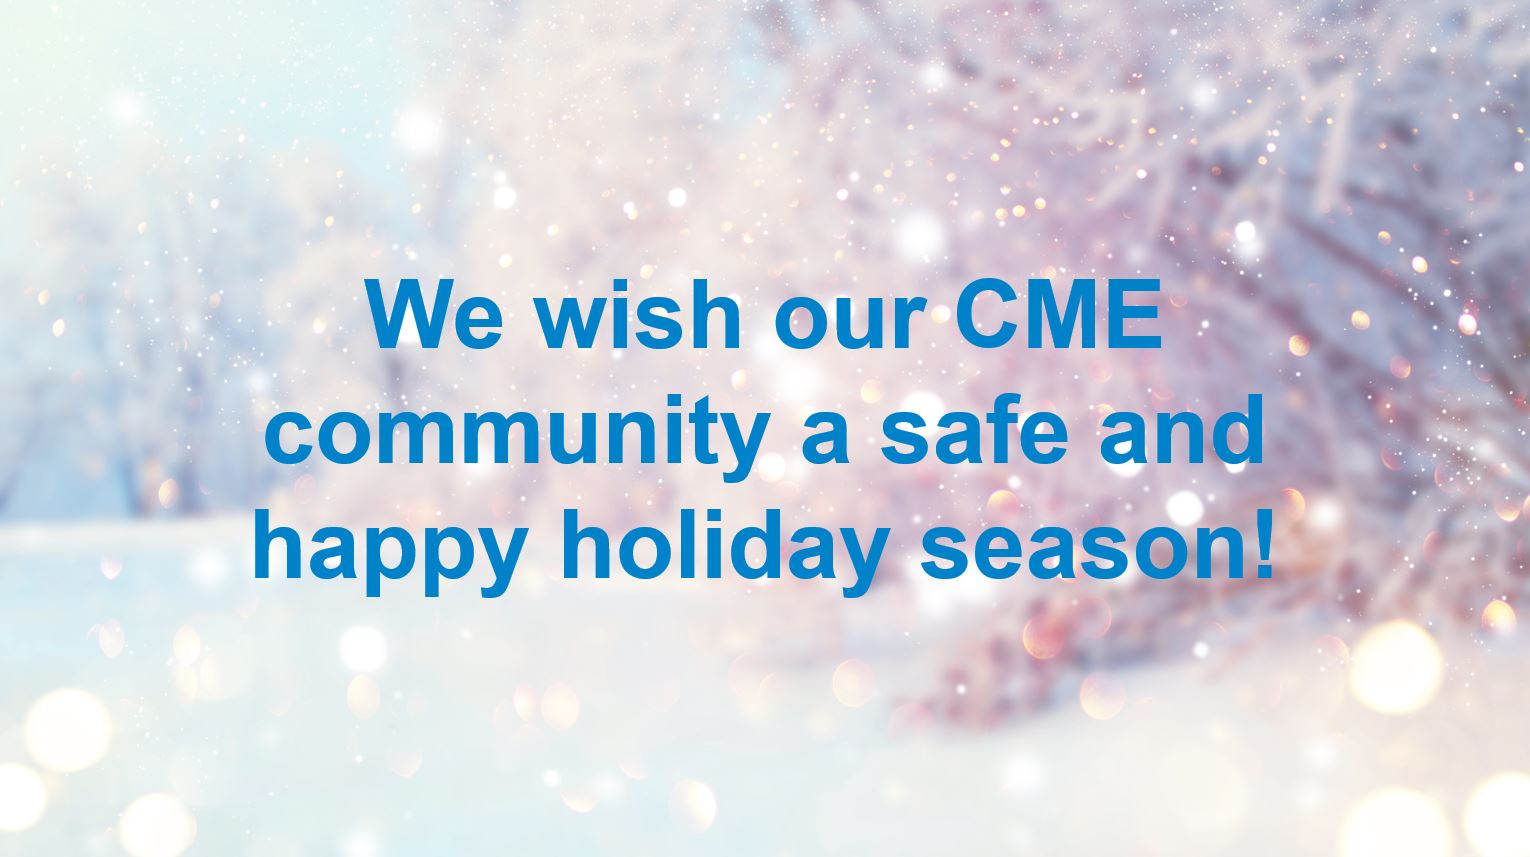 Happy holidays from ACCME